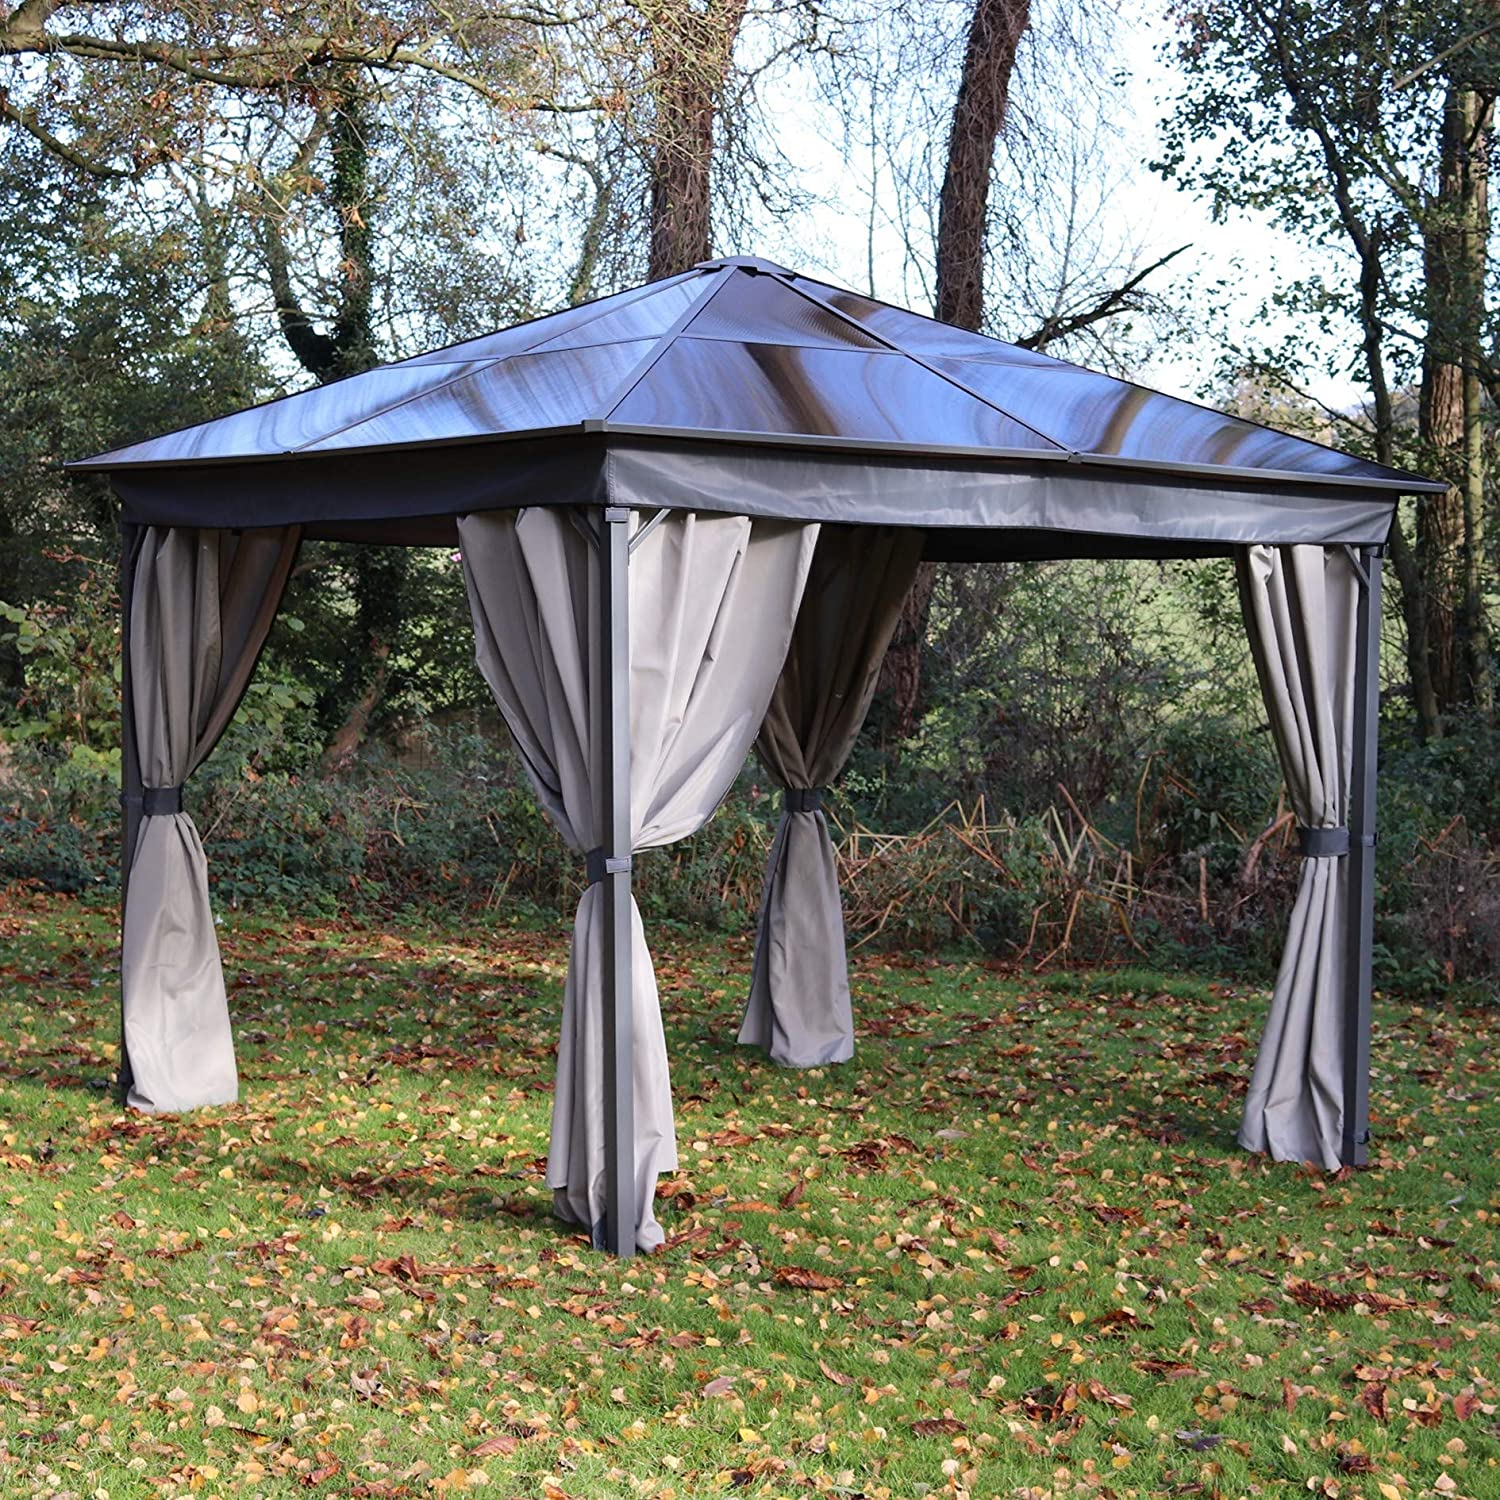 MASTERS OUTDOOR LEISURE LTD Gazebo - Techo de policarbonato (3 x 3 ...